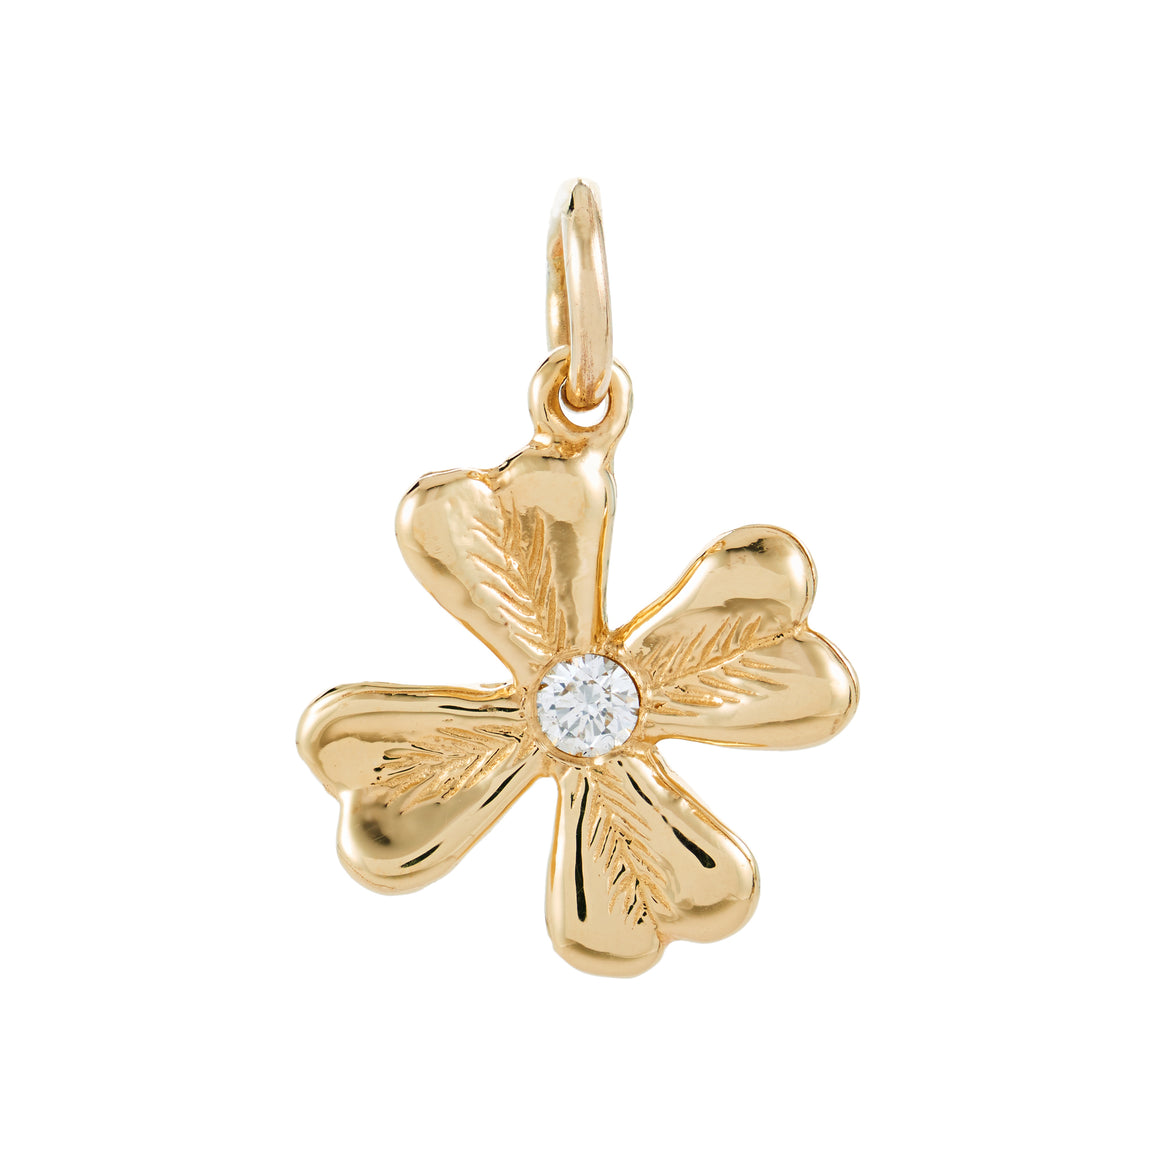 FOUR LEAF DIAMOND CLOVER CHARM - YELLOW GOLD